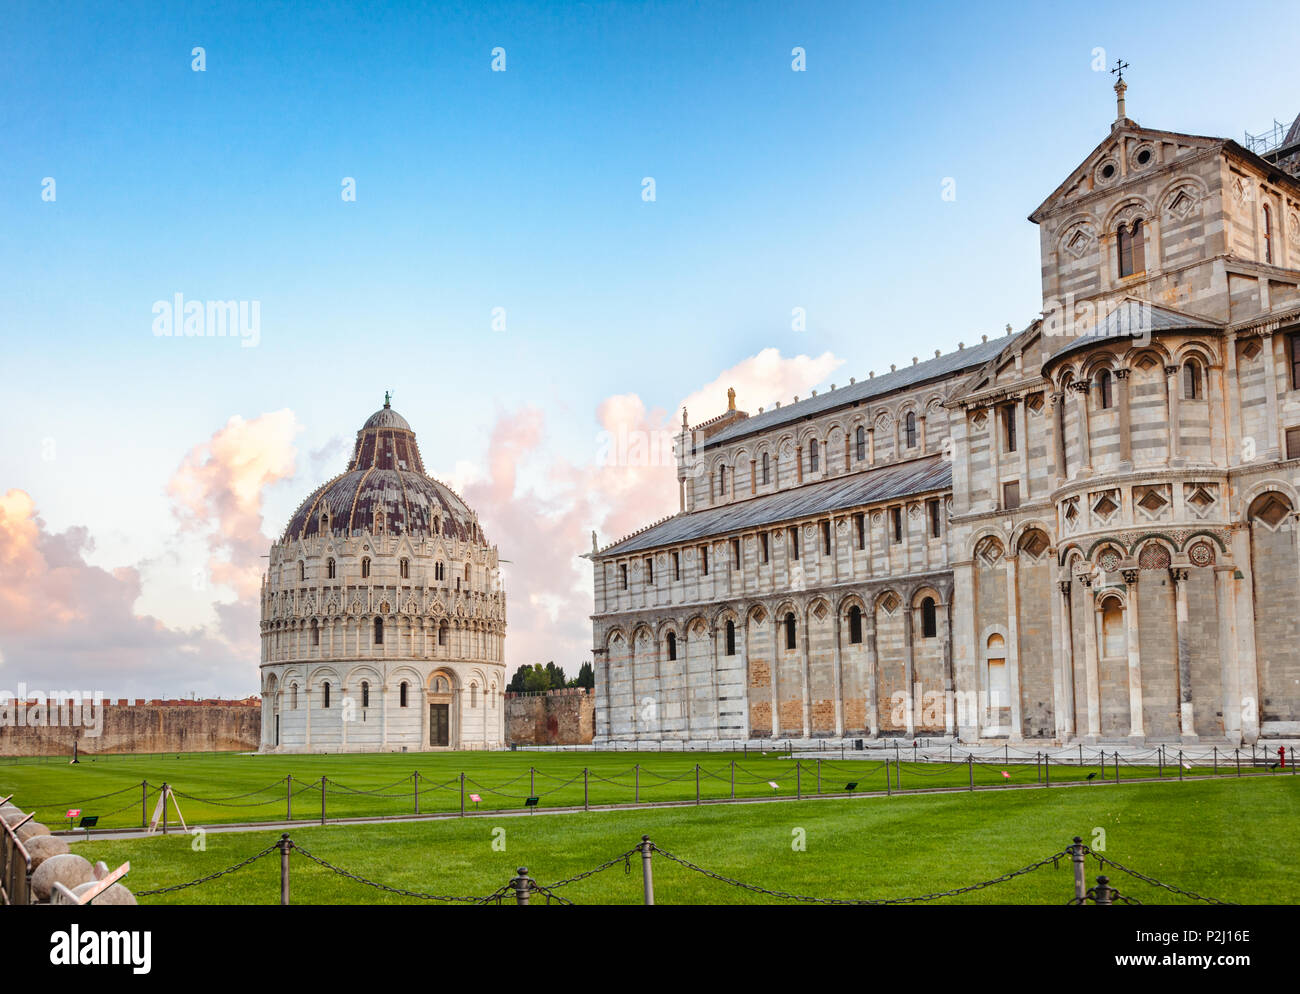 Piazza dei Miracoli (Square of Miracles) or Piazza del Duomo (Cathedral Square) with Pisa Baptistery and Pisa Cathedral in the morning light, Pisa, Tu - Stock Image